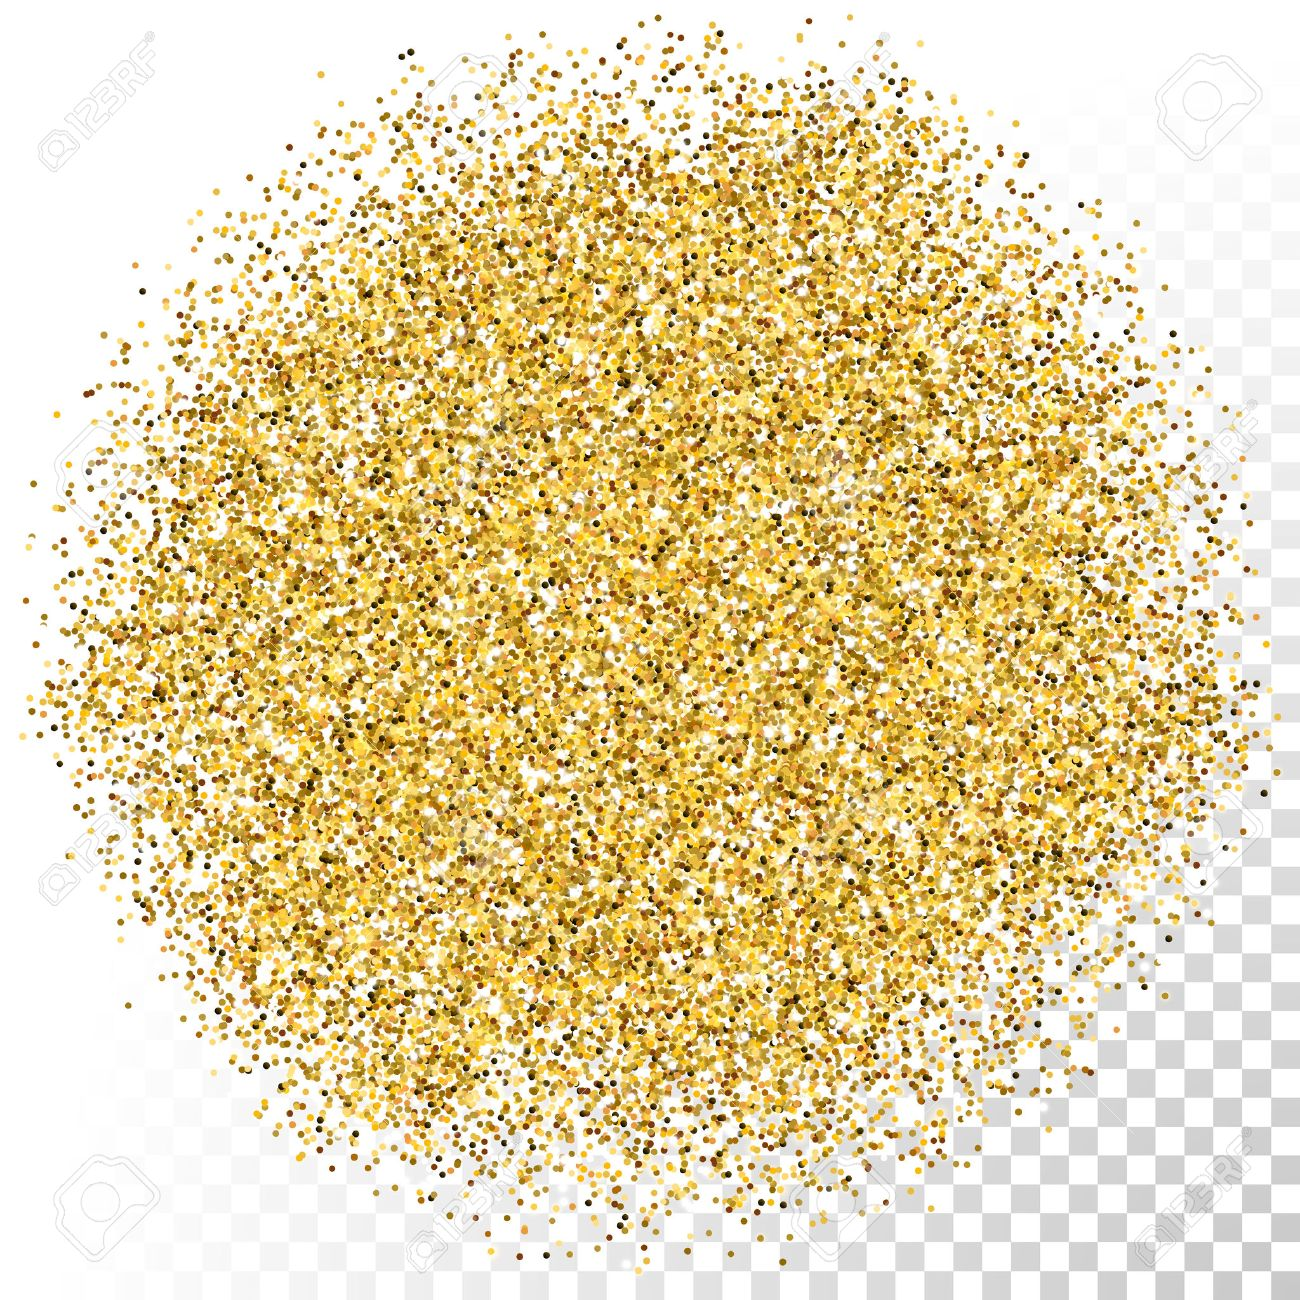 Gold glitter bright vector transparent background golden sparkles - Vector Gold Scattered Glitter Particles Texture On Transparent Background Stock Vector 49962727